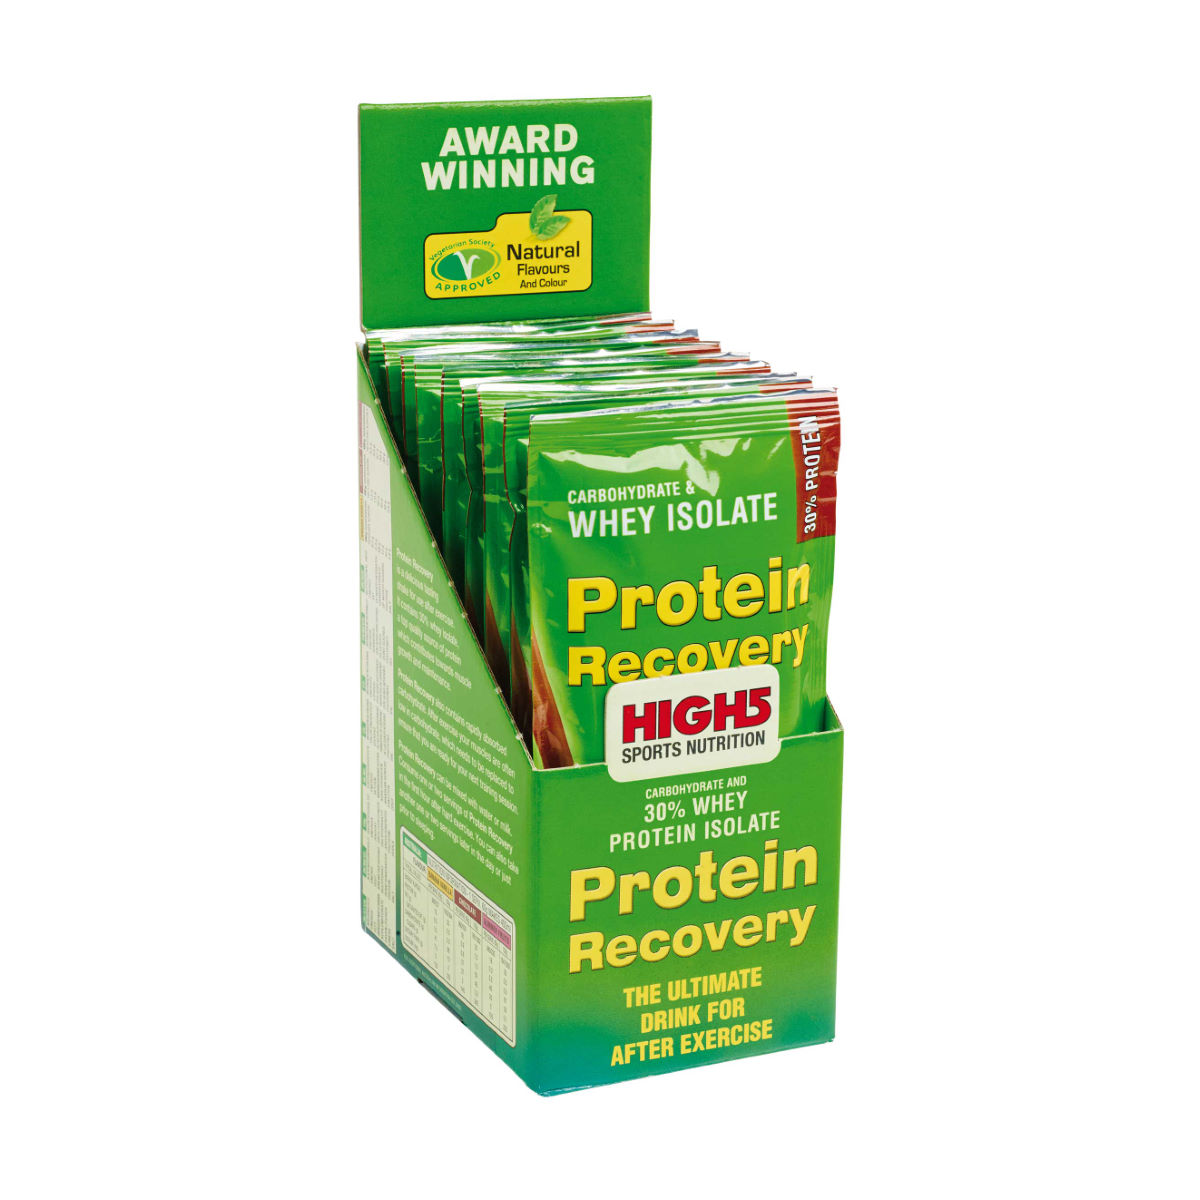 High5 Protein Recovery - 9 x 60g Sachets